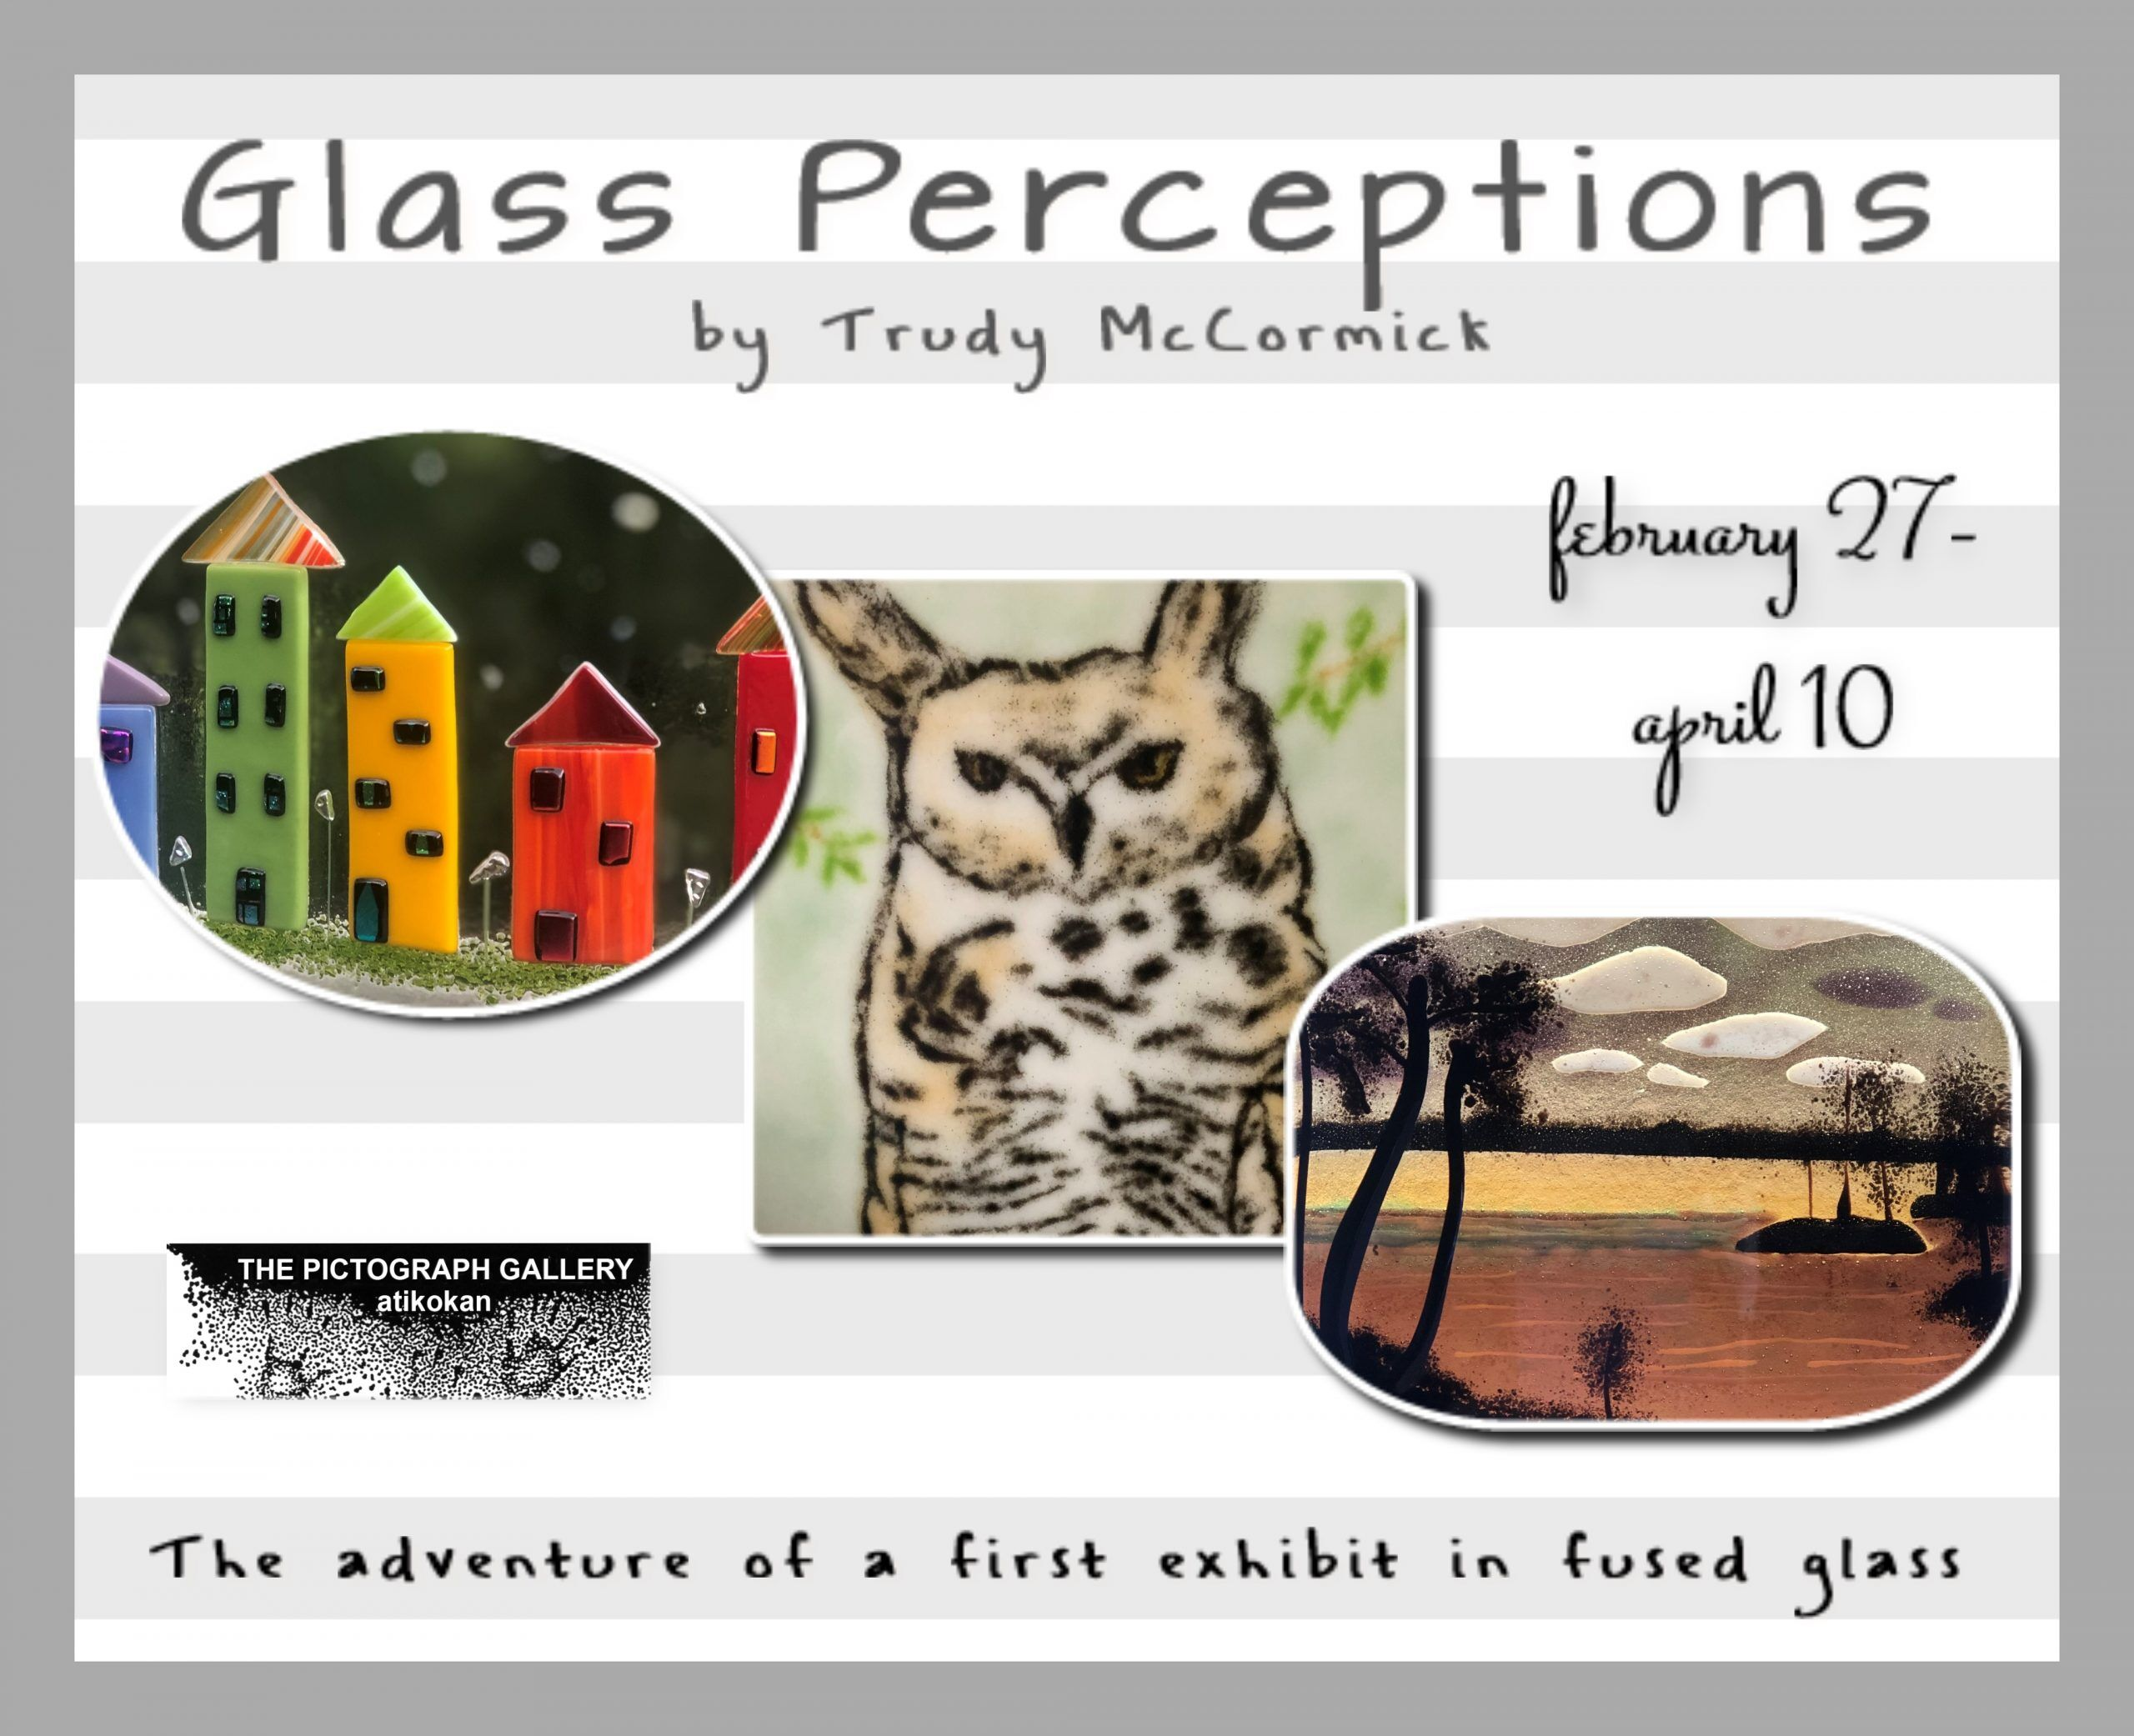 Pictograph Gallery presents Glass Perception by Trudy McCormick February 21 to April 10, 2021